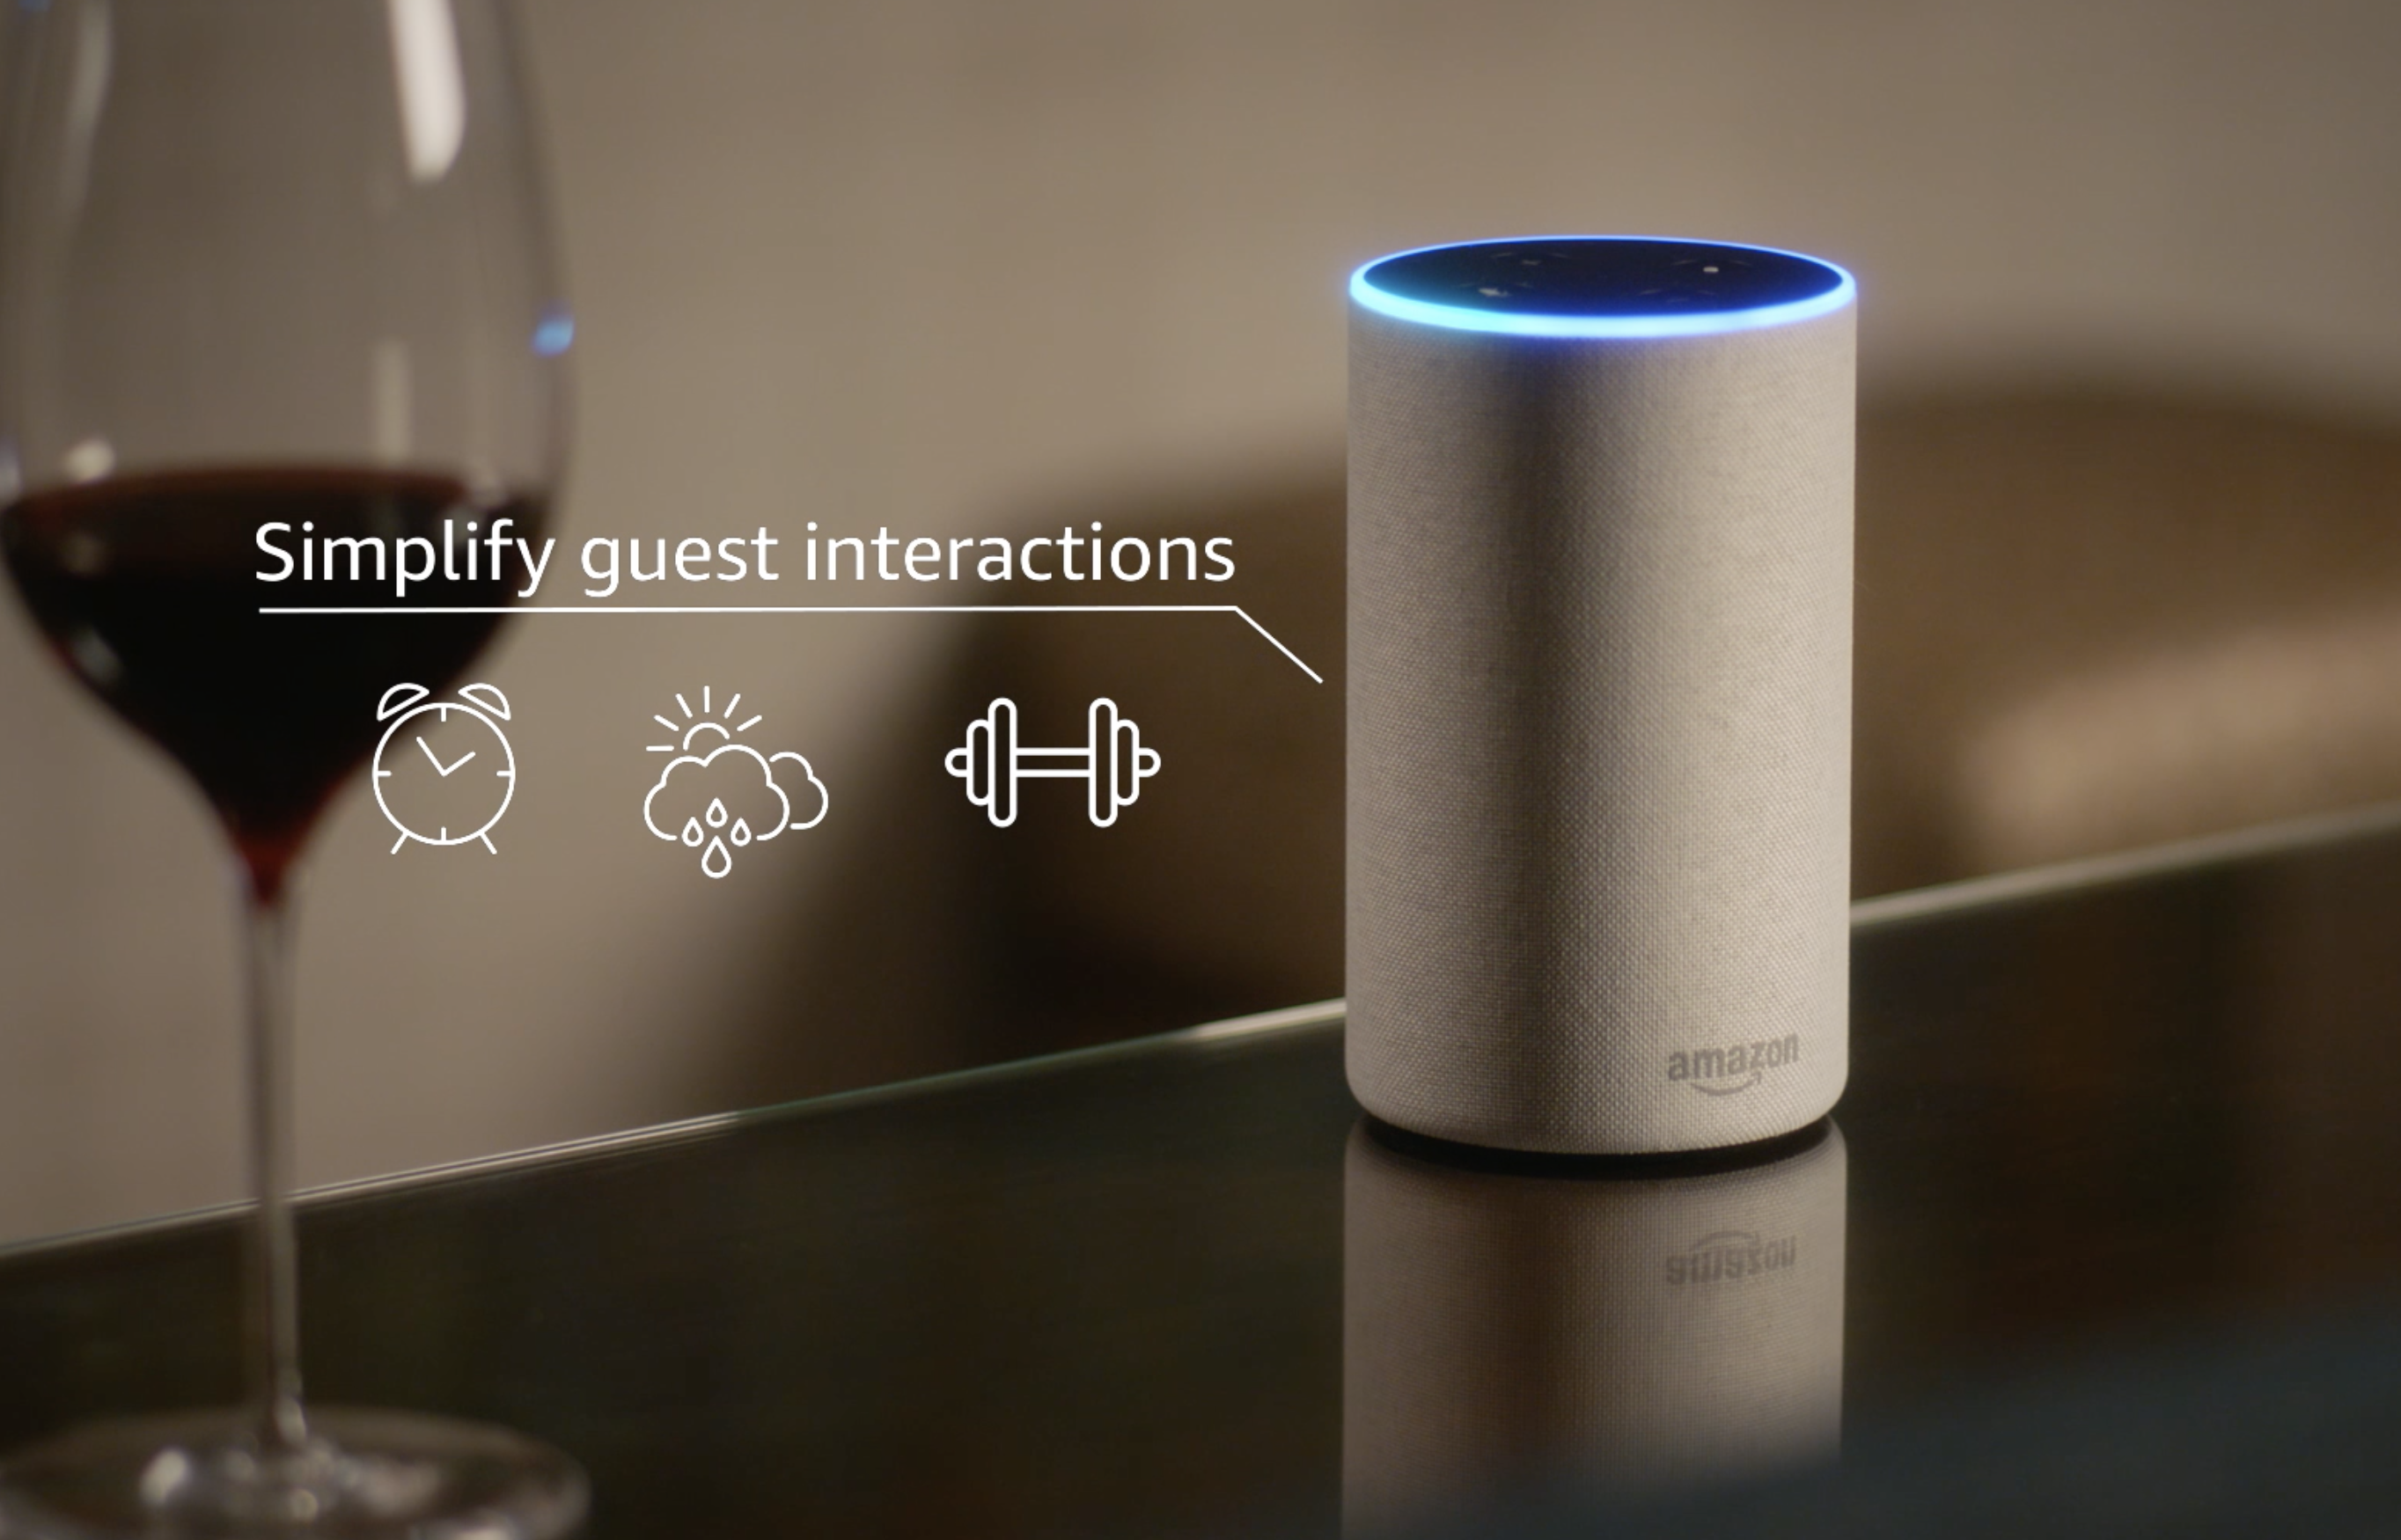 A luxury hotel chain has just hired Amazon's Alexa as a butler